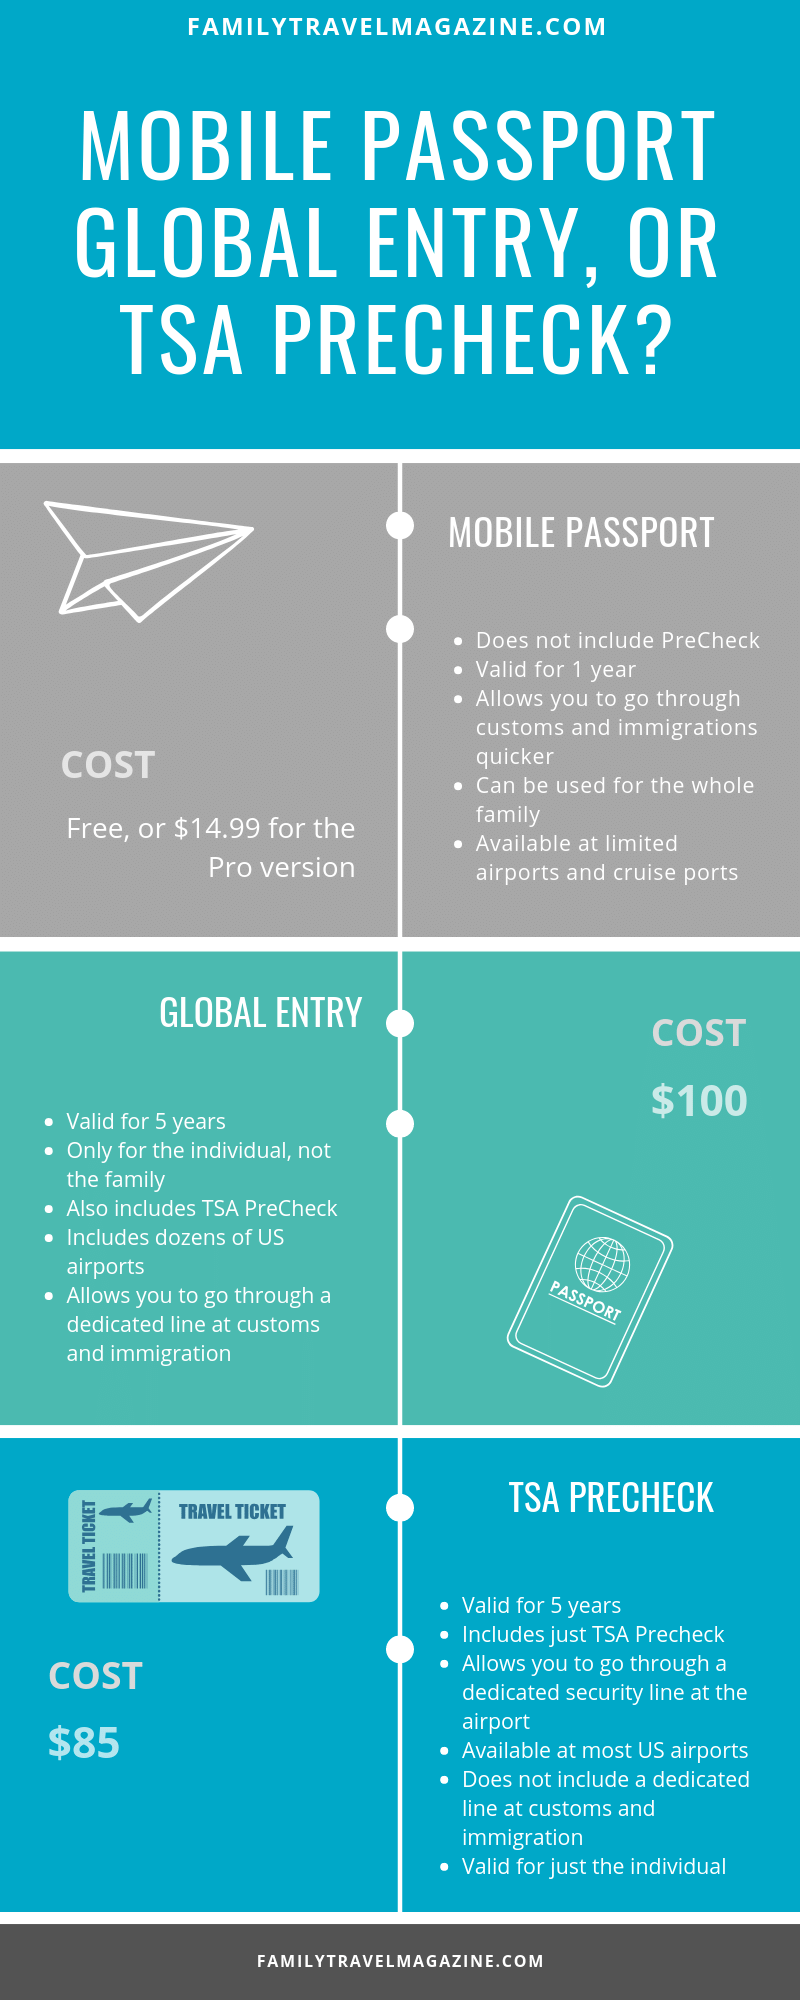 Decide which works best - mobile passport, global entry, or TSA Precheck.